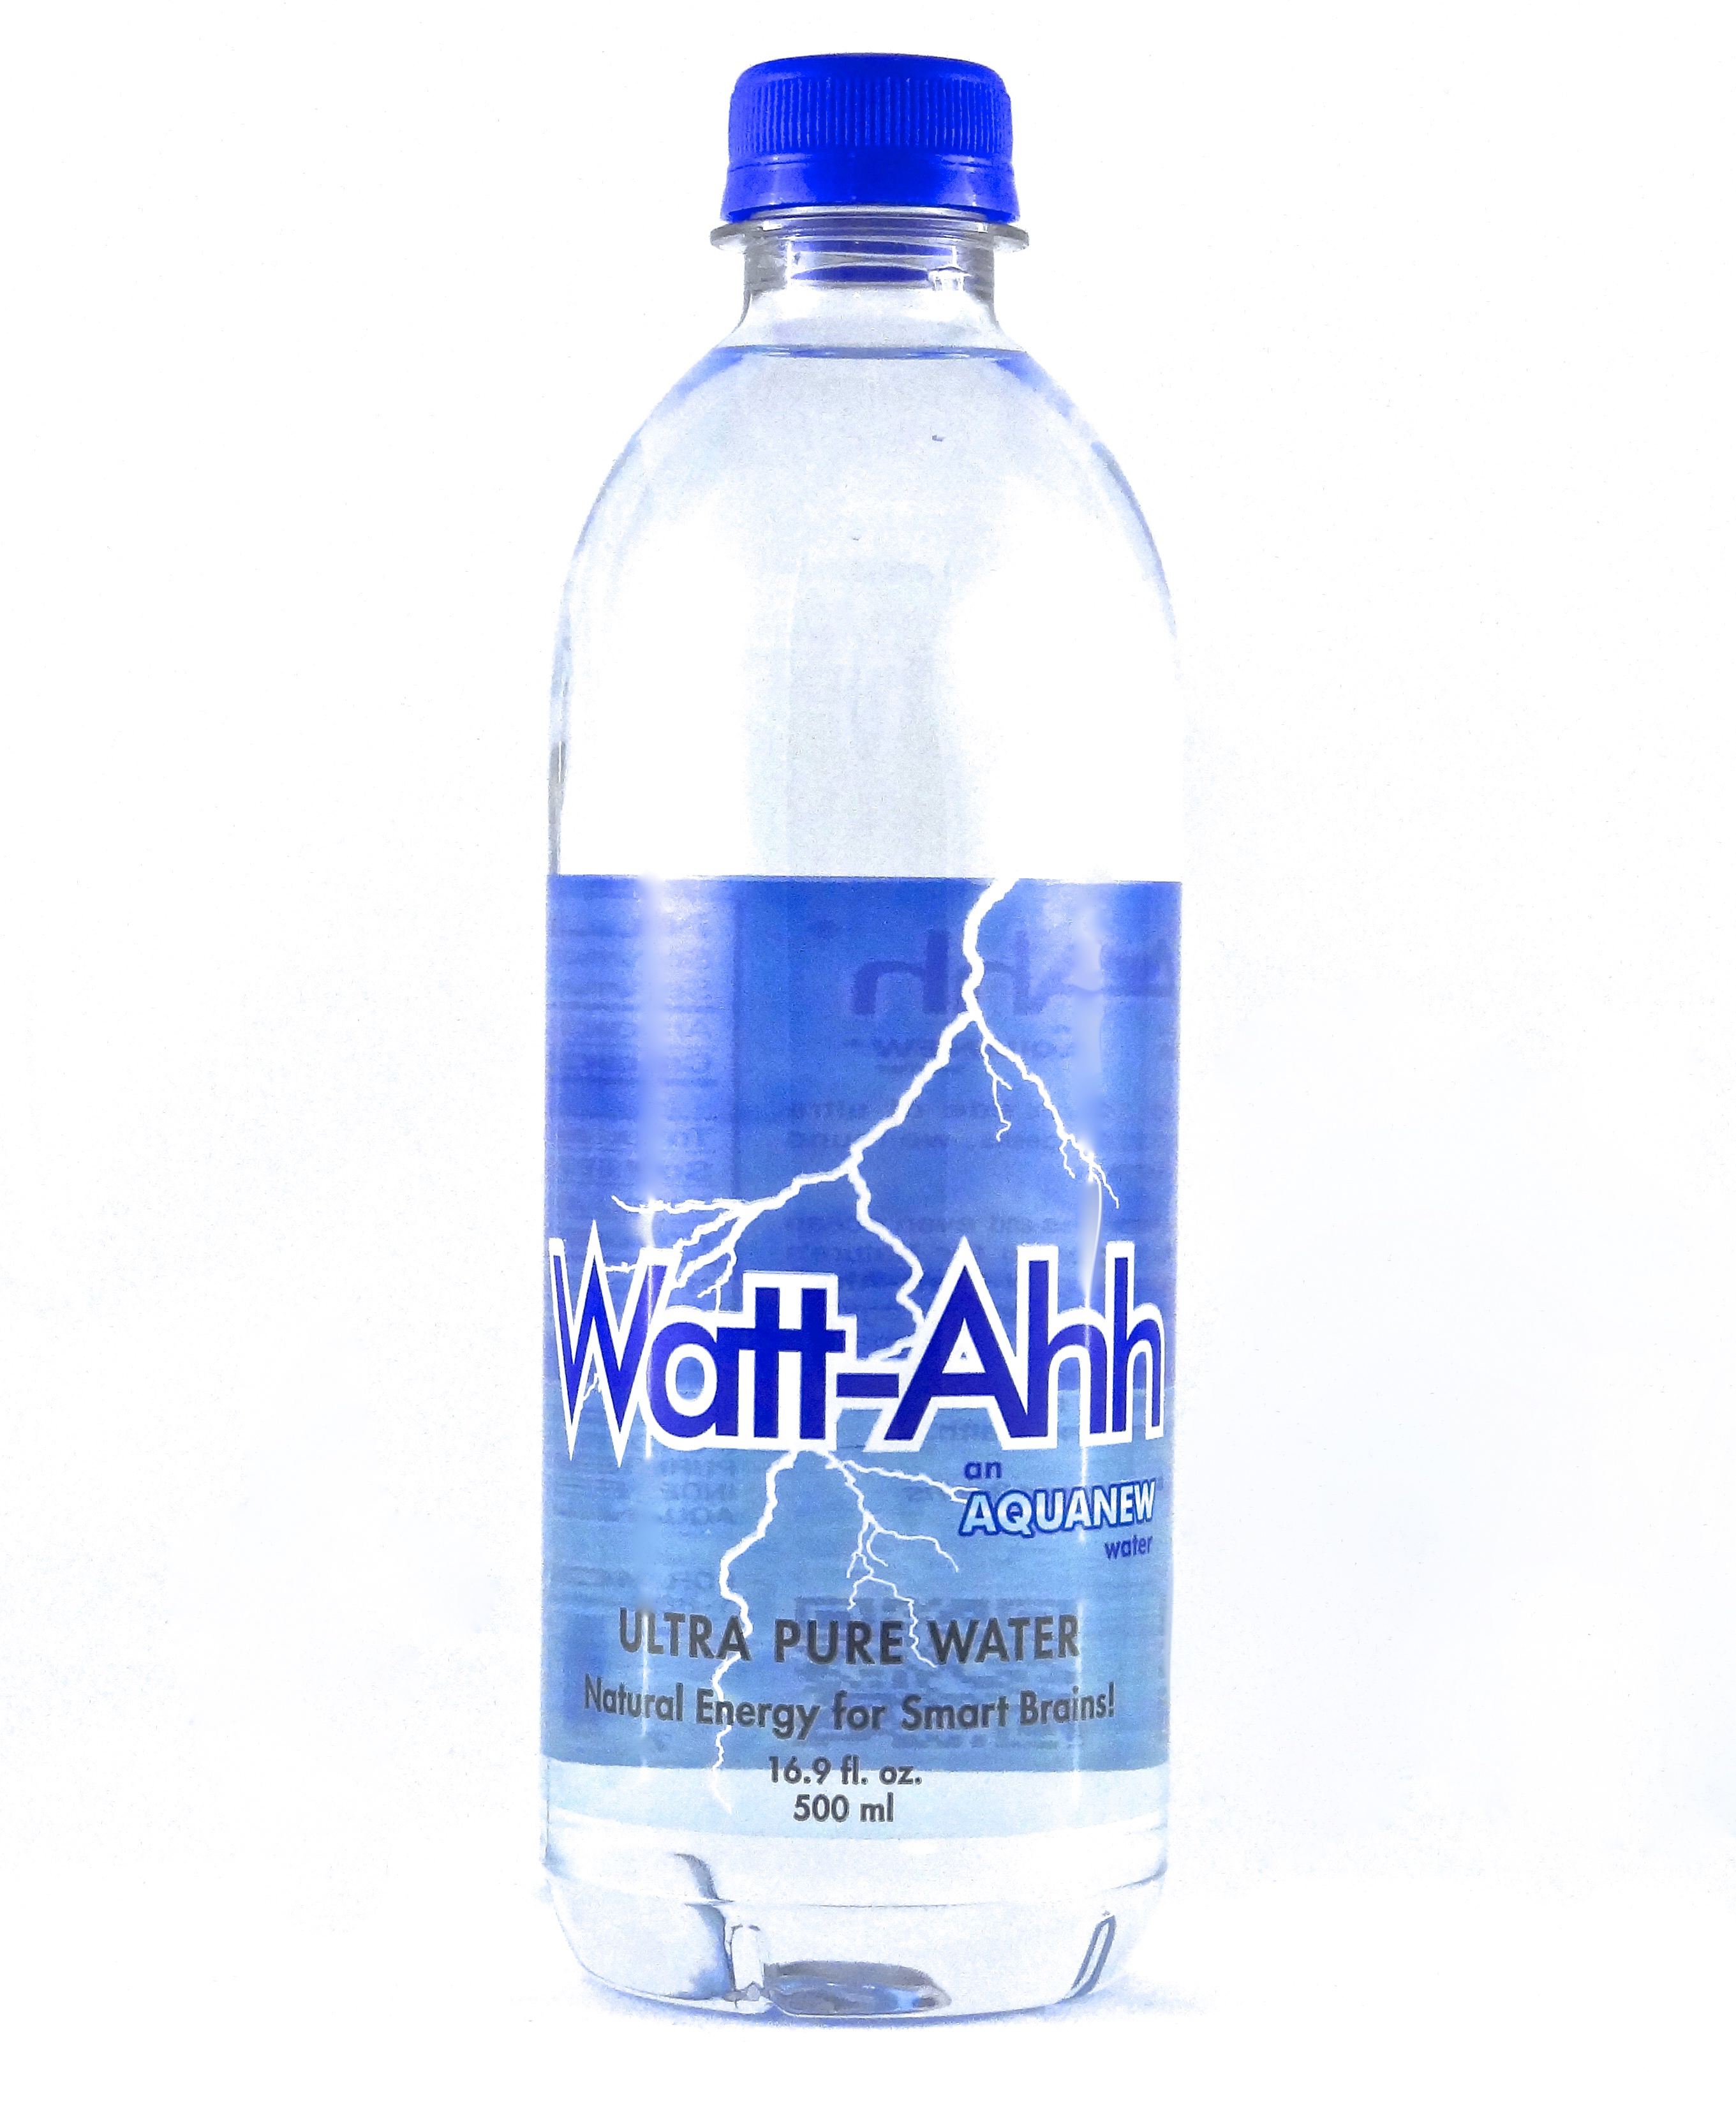 Watt-Ahh bottle cutout